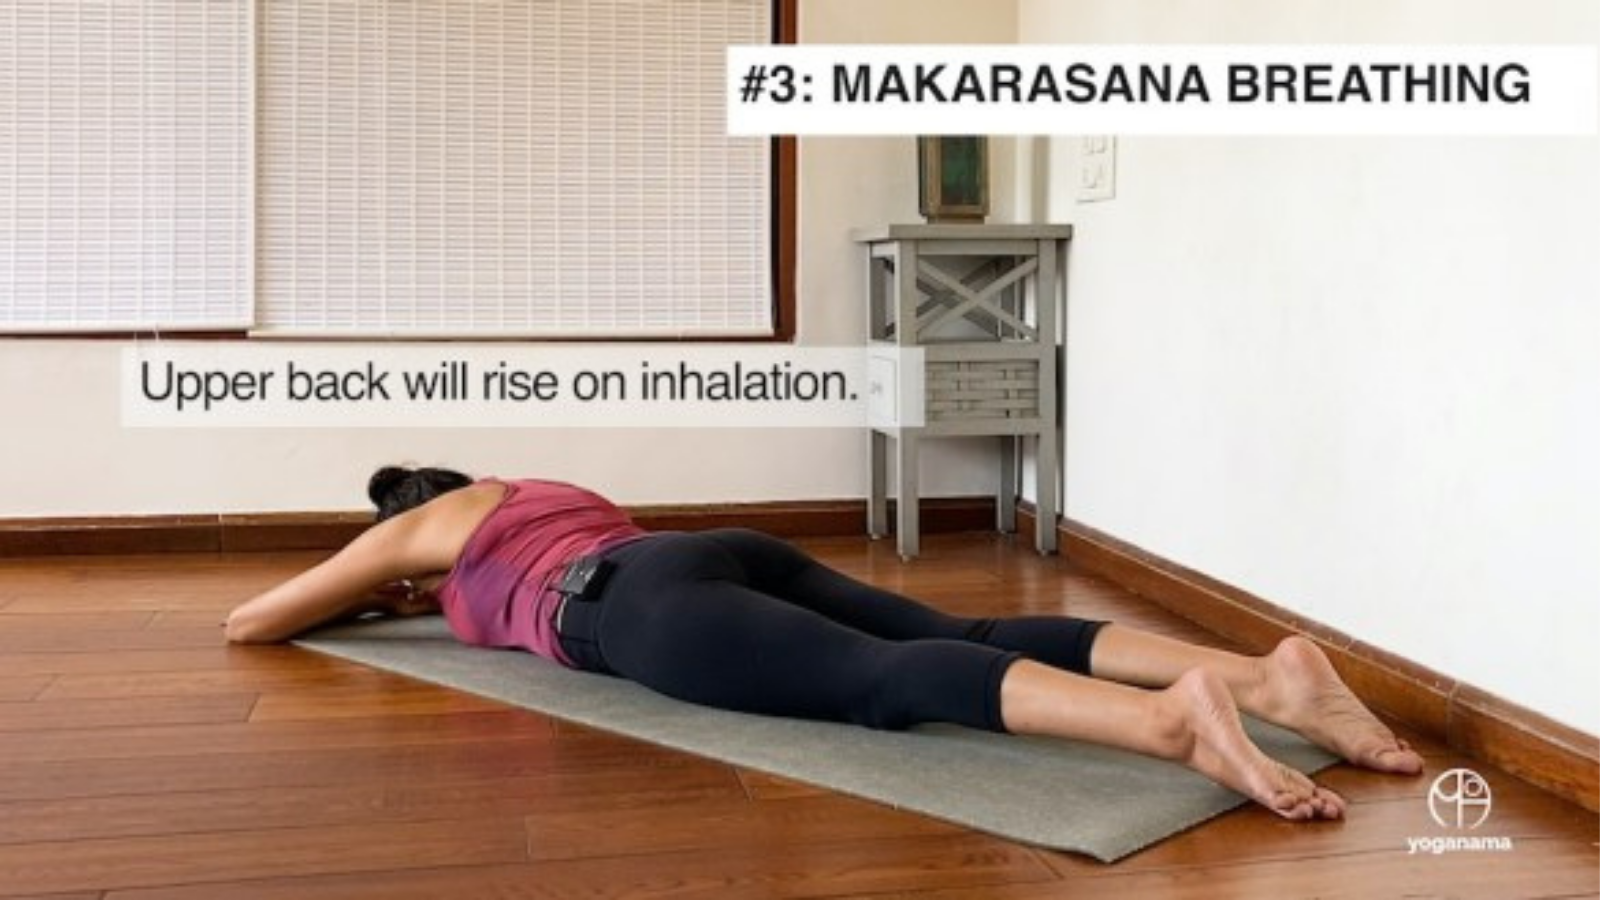 How to practice Crocodile Pose (Makarasana) Breathing Exercise for better lung capacity